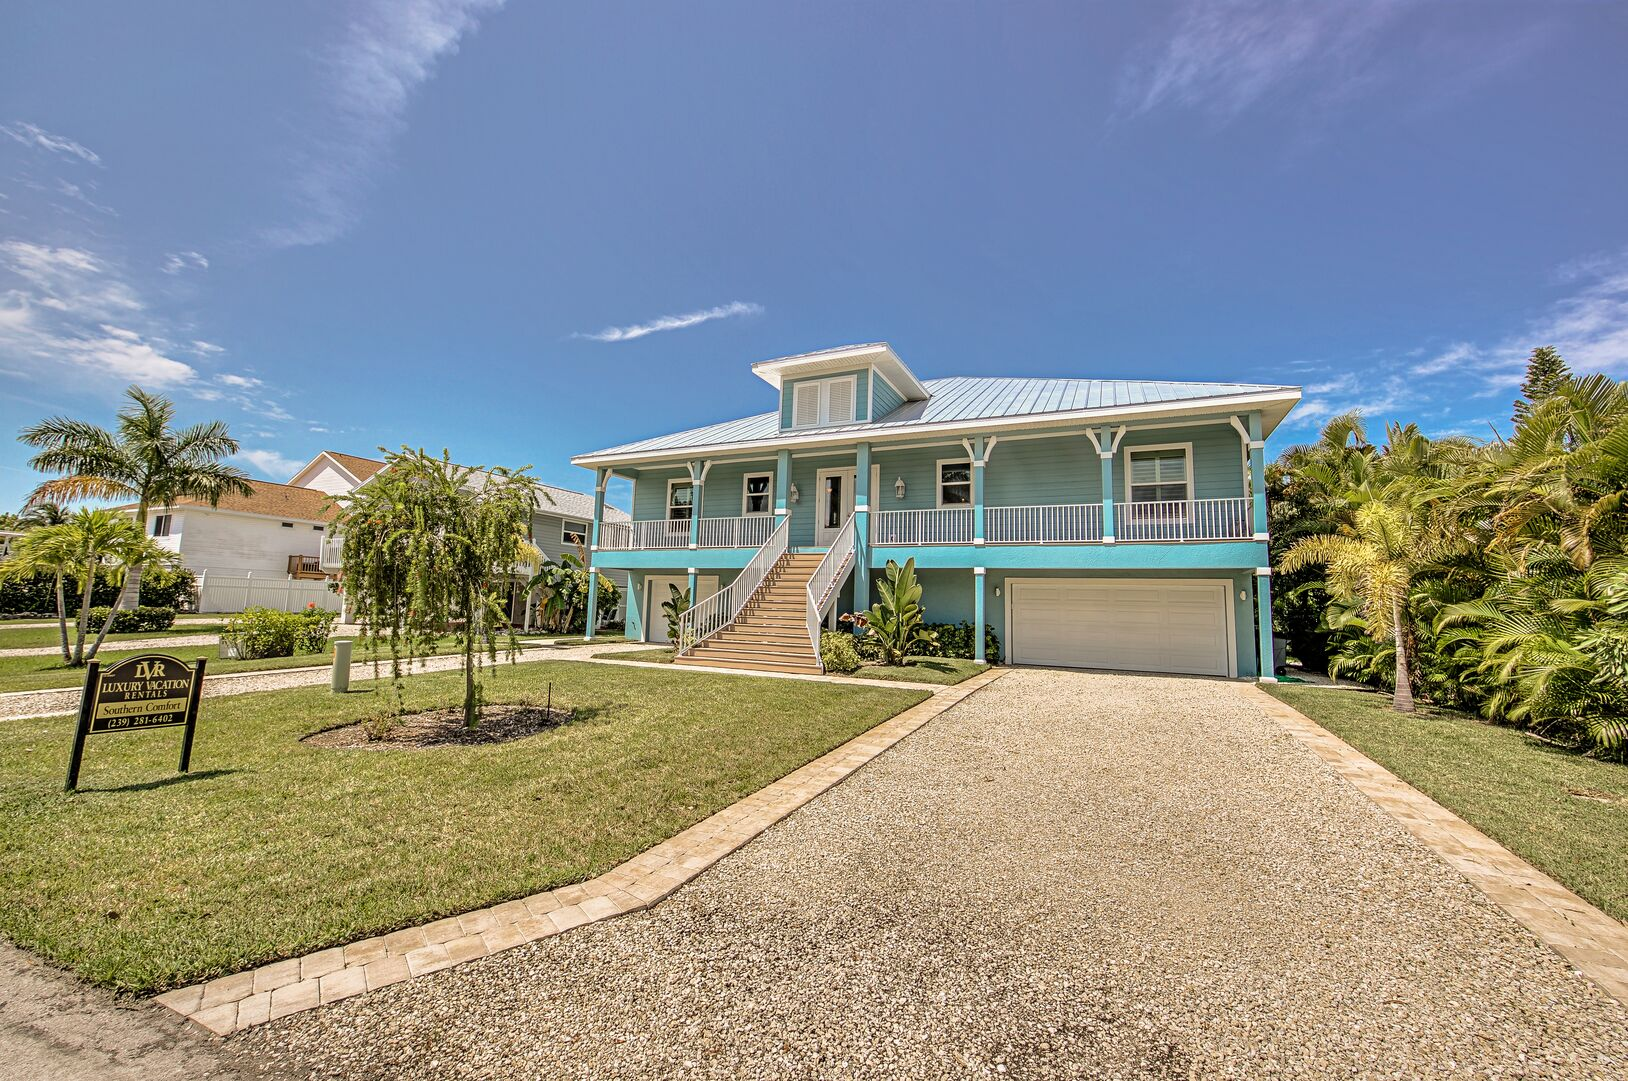 Driveway and front entrance to this vacation rental near Fort Myers Beach